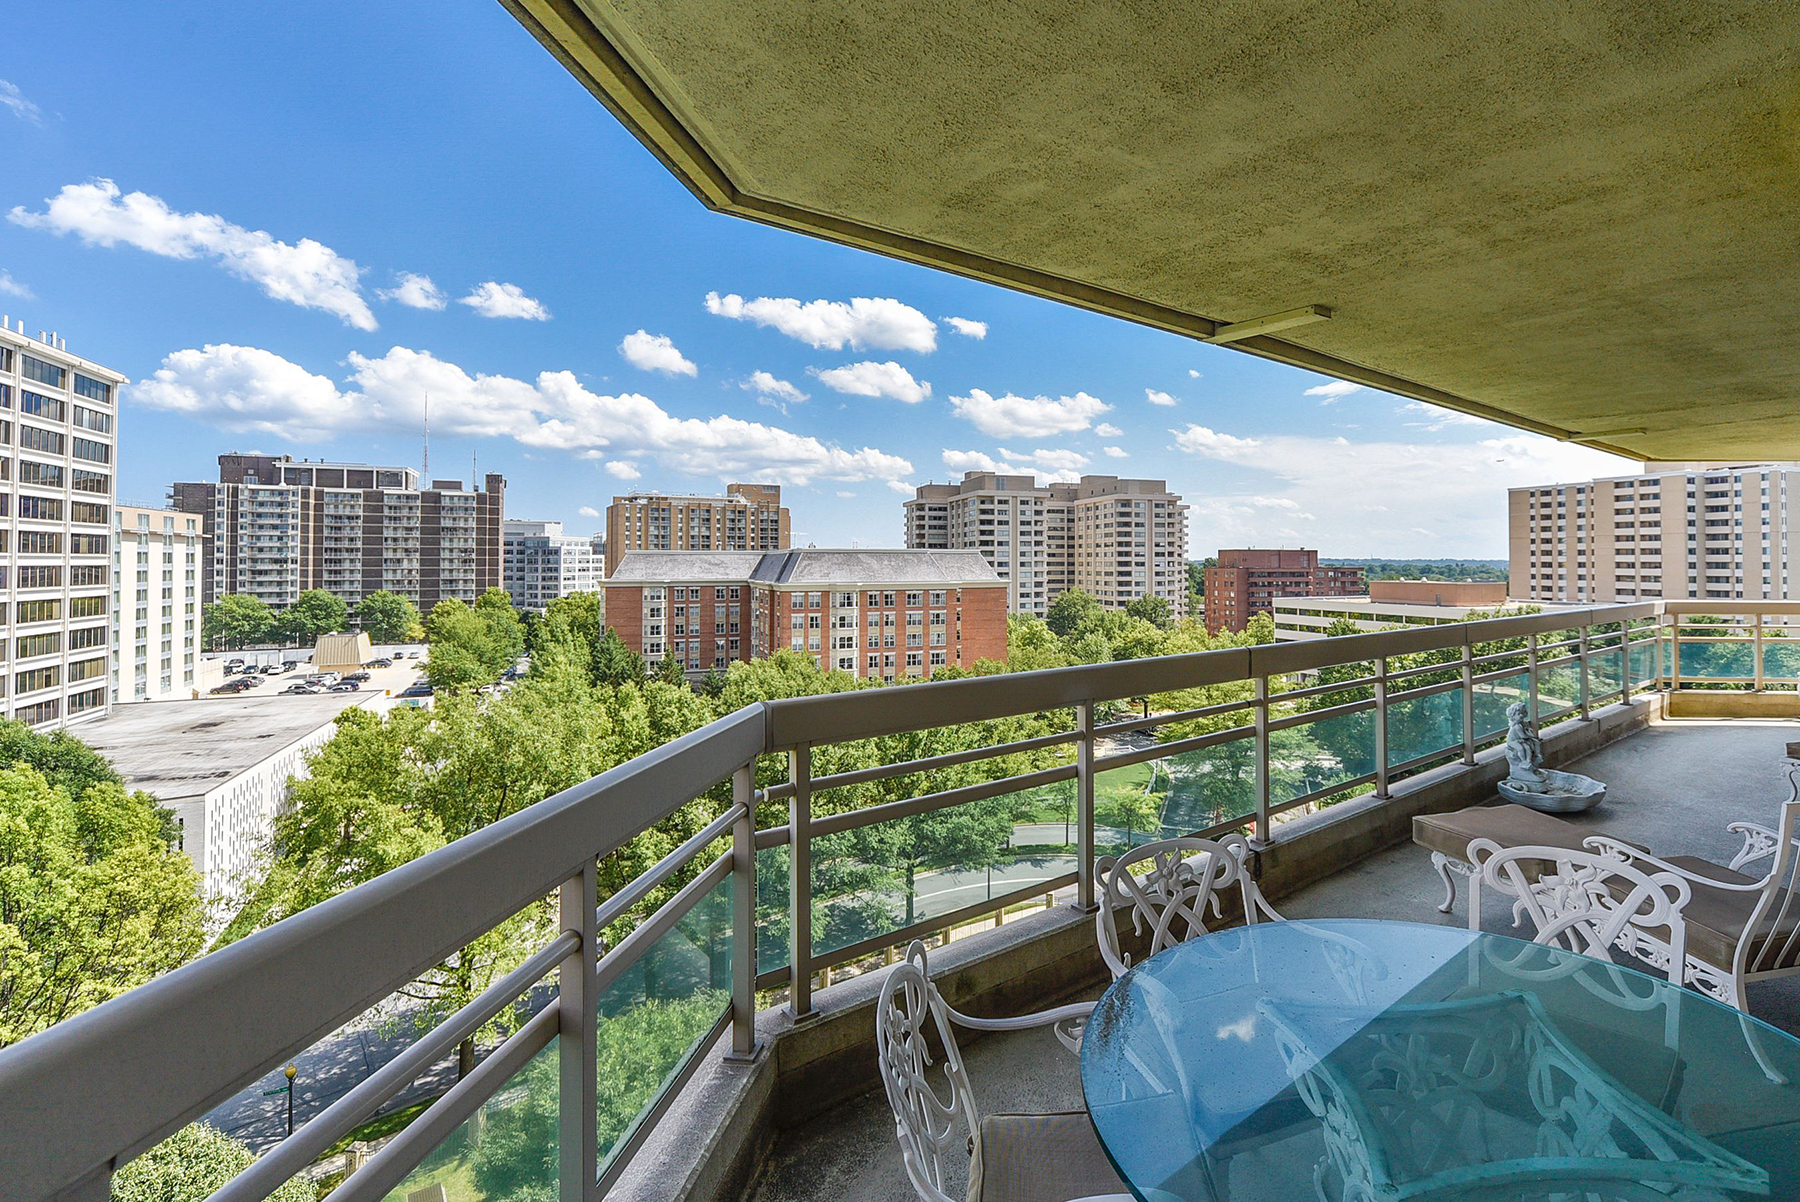 Additional photo for property listing at 5600 Wisconsin Avenue 1103, Chevy Chase 5600 Wisconsin Ave 1103 Chevy Chase, メリーランド 20815 アメリカ合衆国